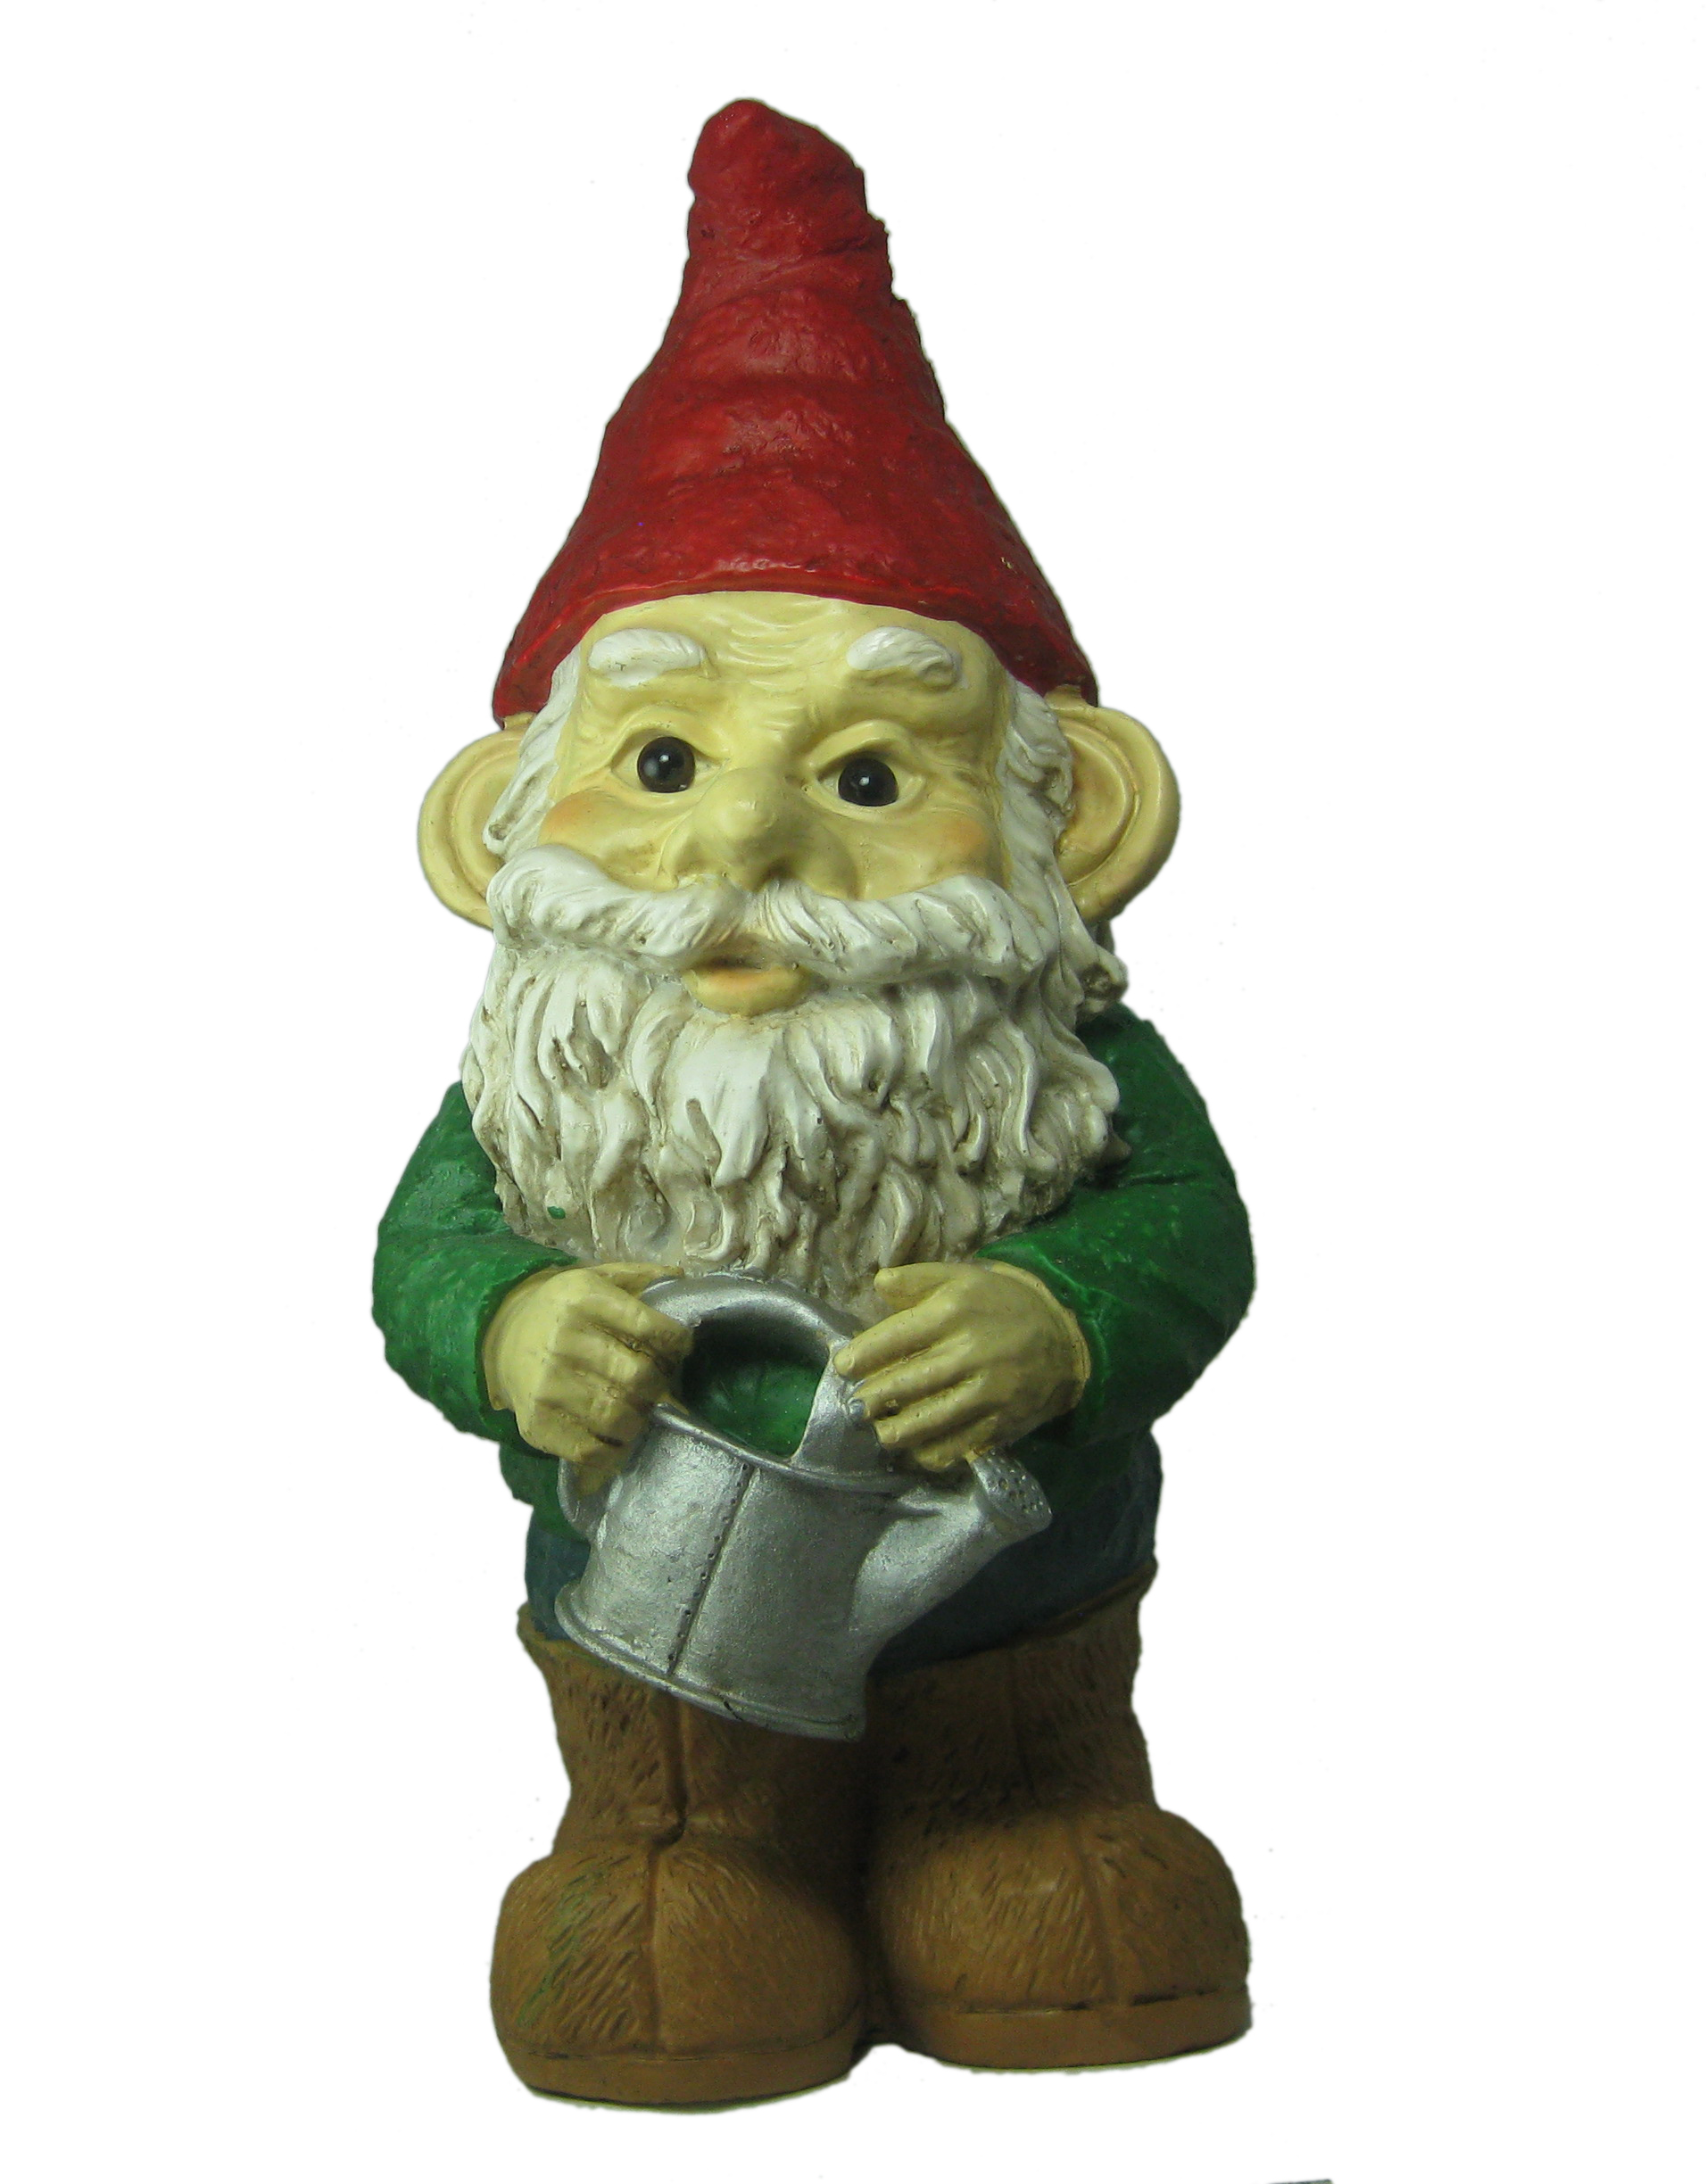 Gnome Toy for the Garden 133.51 Kb